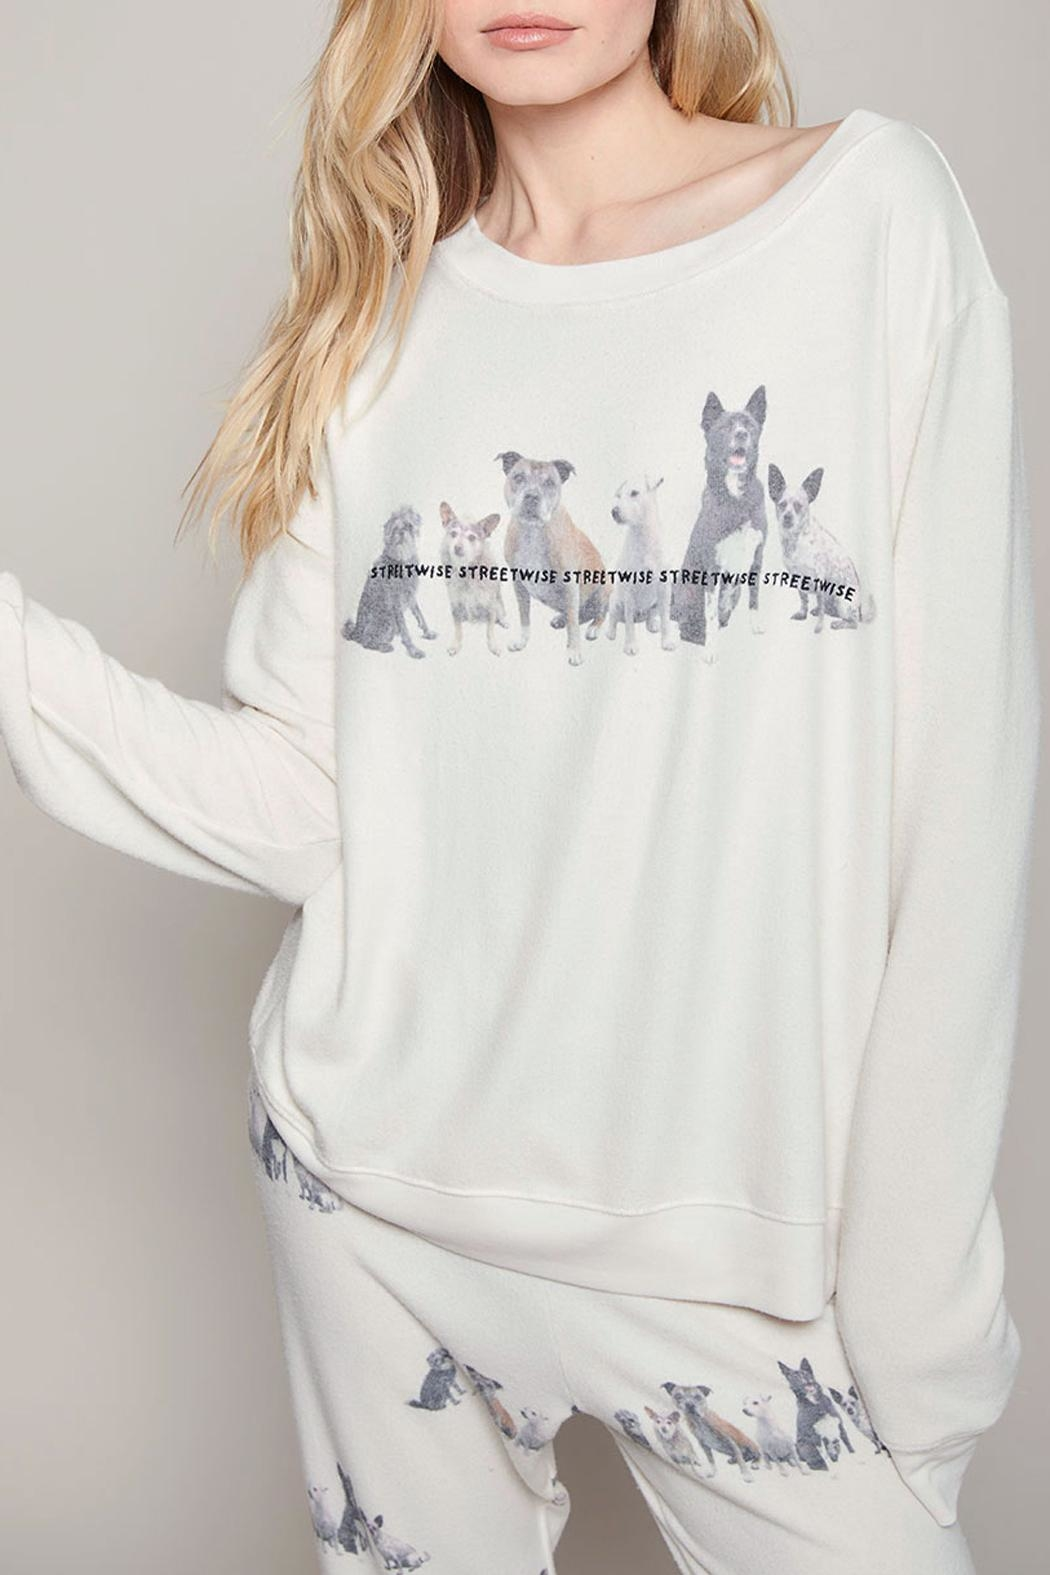 All Things Fabulous Streetwise Cozy Jumper - Front Full Image